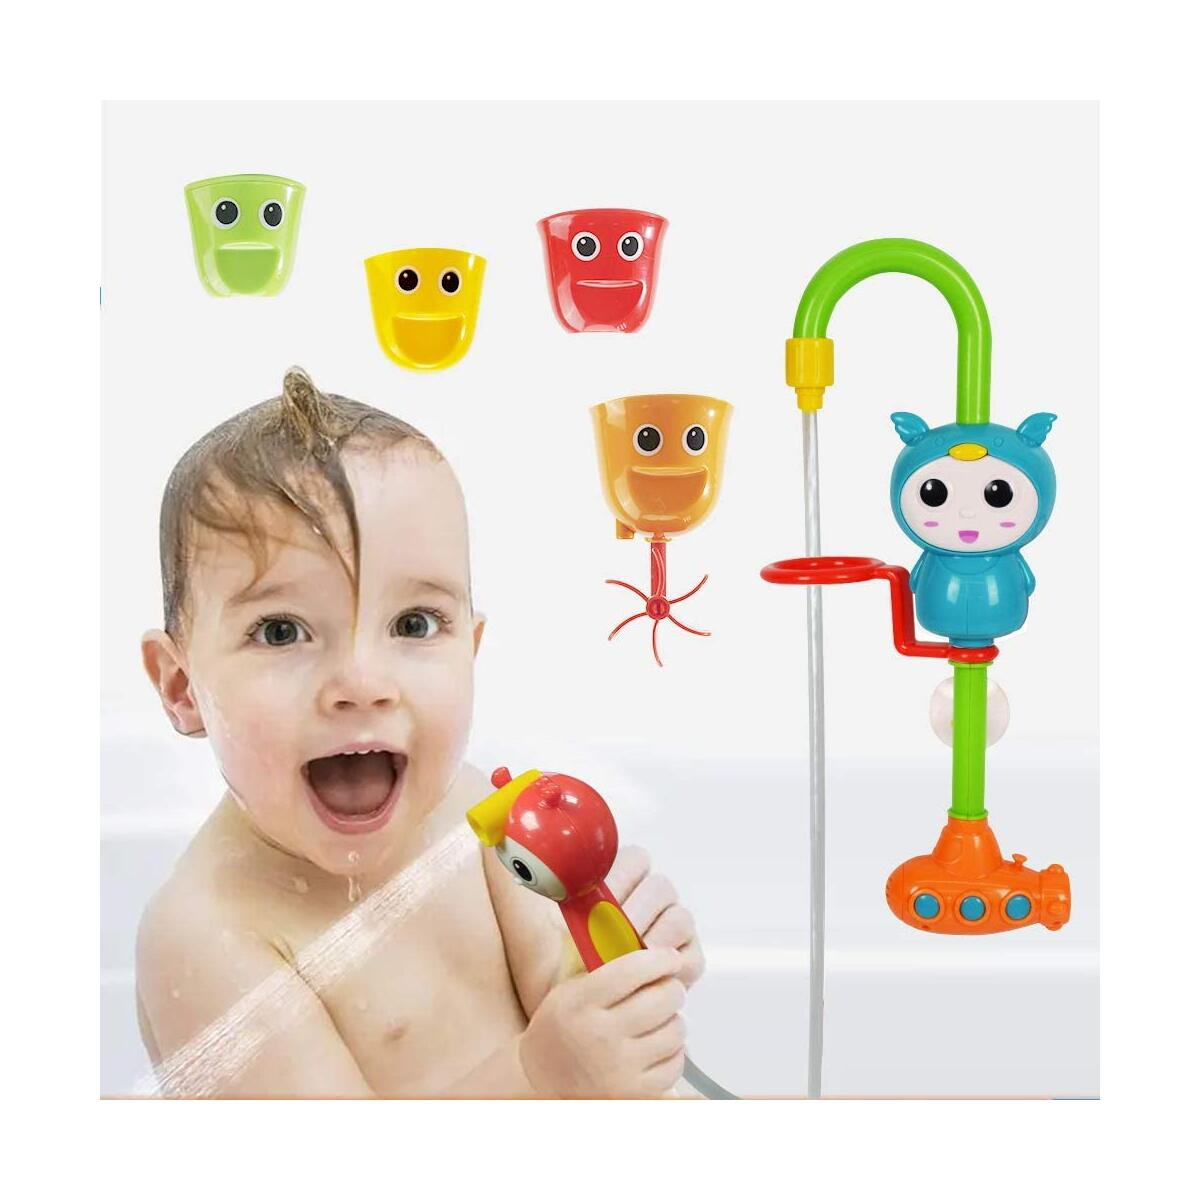 WISHTIME Baby Bath Toy, Baby Shower Head for Bath Bathtub Toy with Electric Water Pump with Hand Shower and 3 Stackable Cups, Automated Spout for Toddlers Kids 1 2 3 4 Year Old Girls Boys